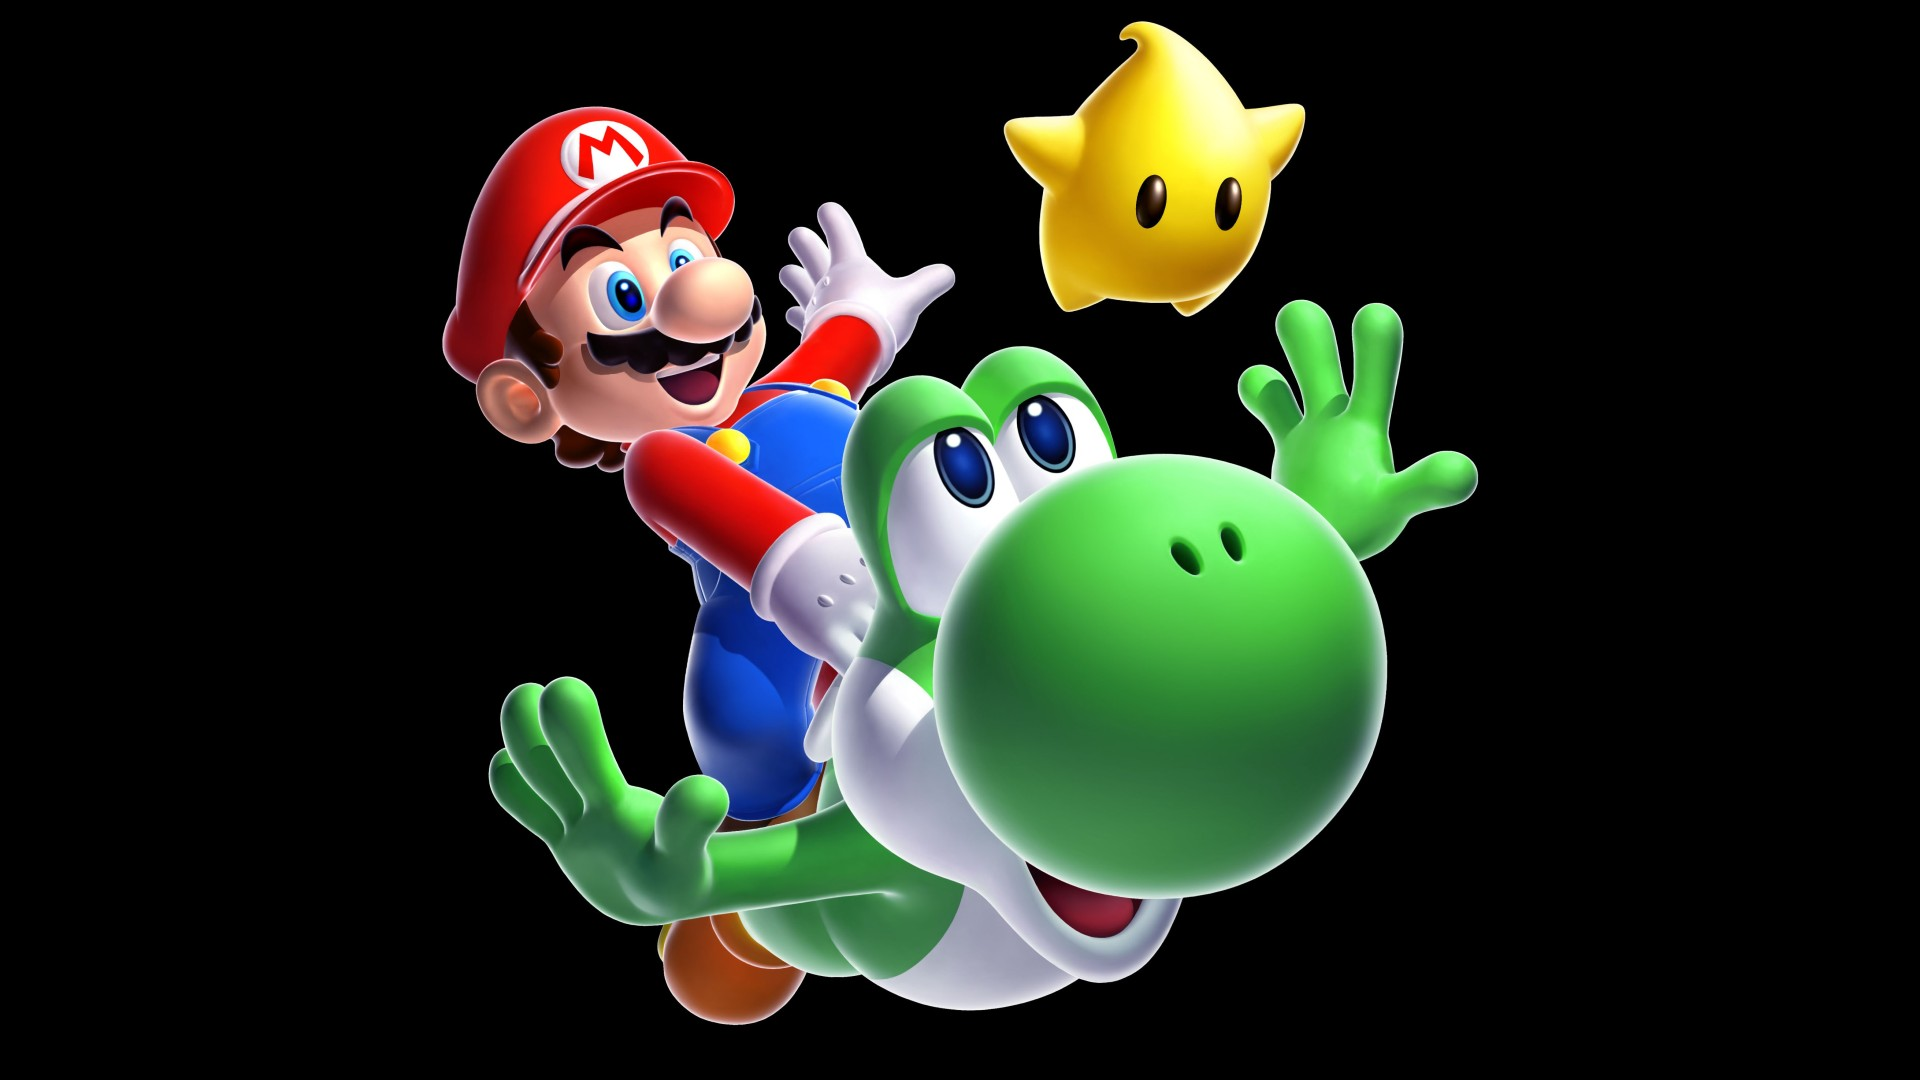 Super Mario Wallpaper Iphone 5 Super Mario Galaxy 2 Full Hd Wallpaper And Background